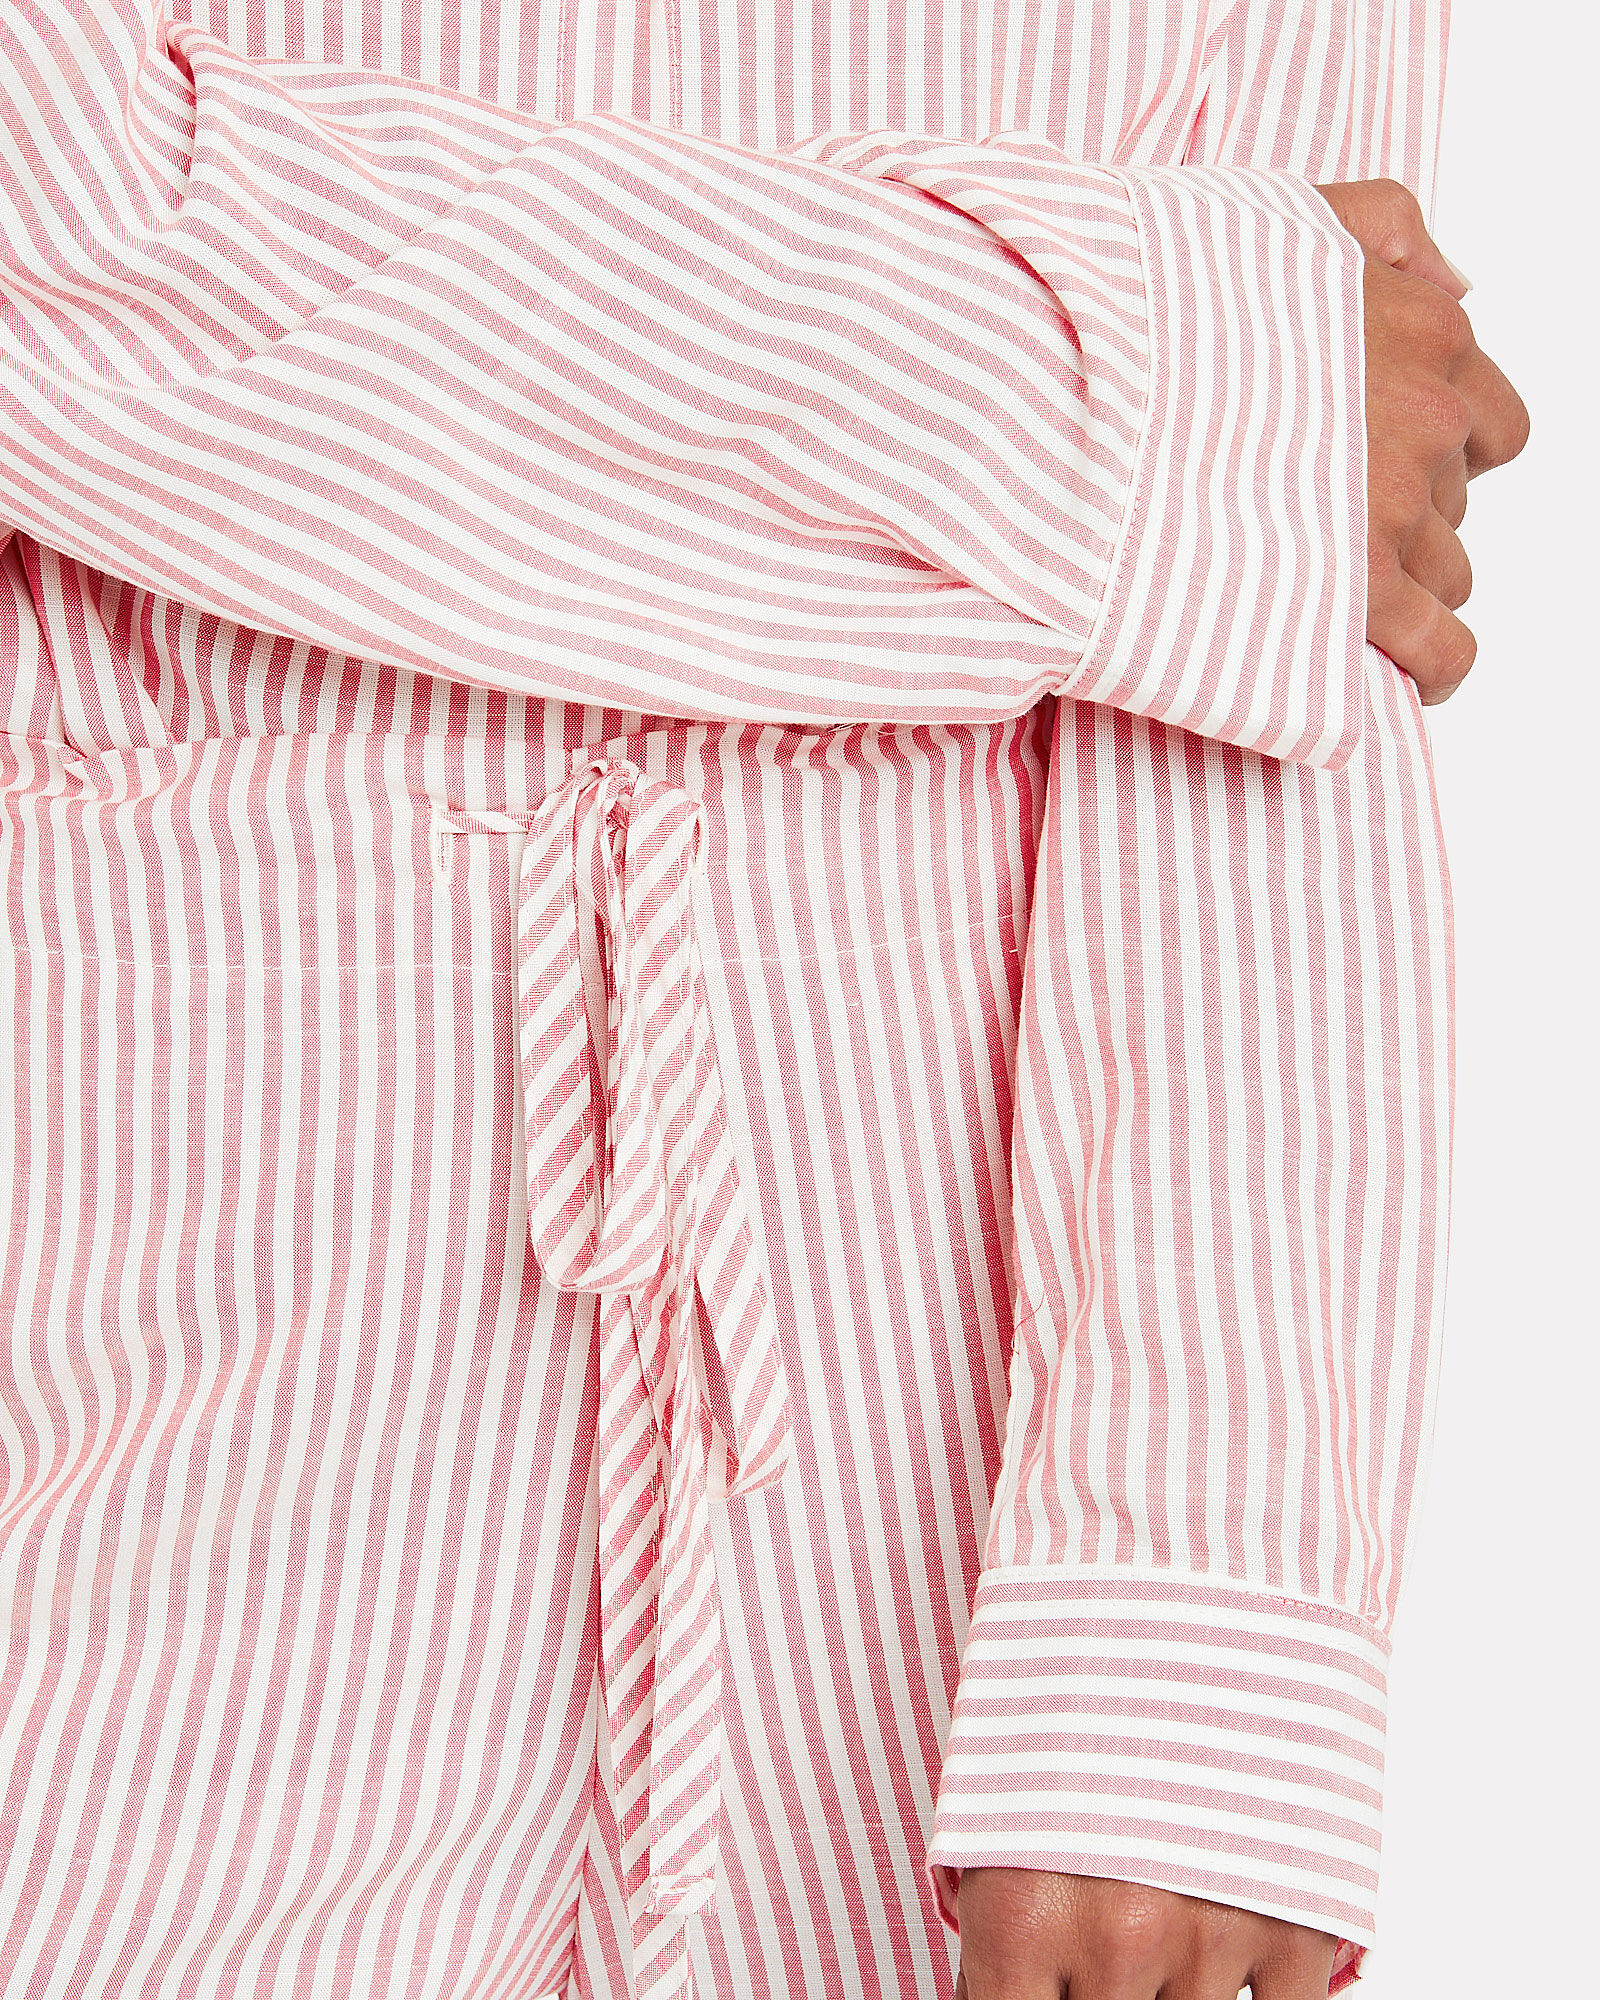 Kye Striped Button Front Shirt, RED/WHITE STRIPE, hi-res